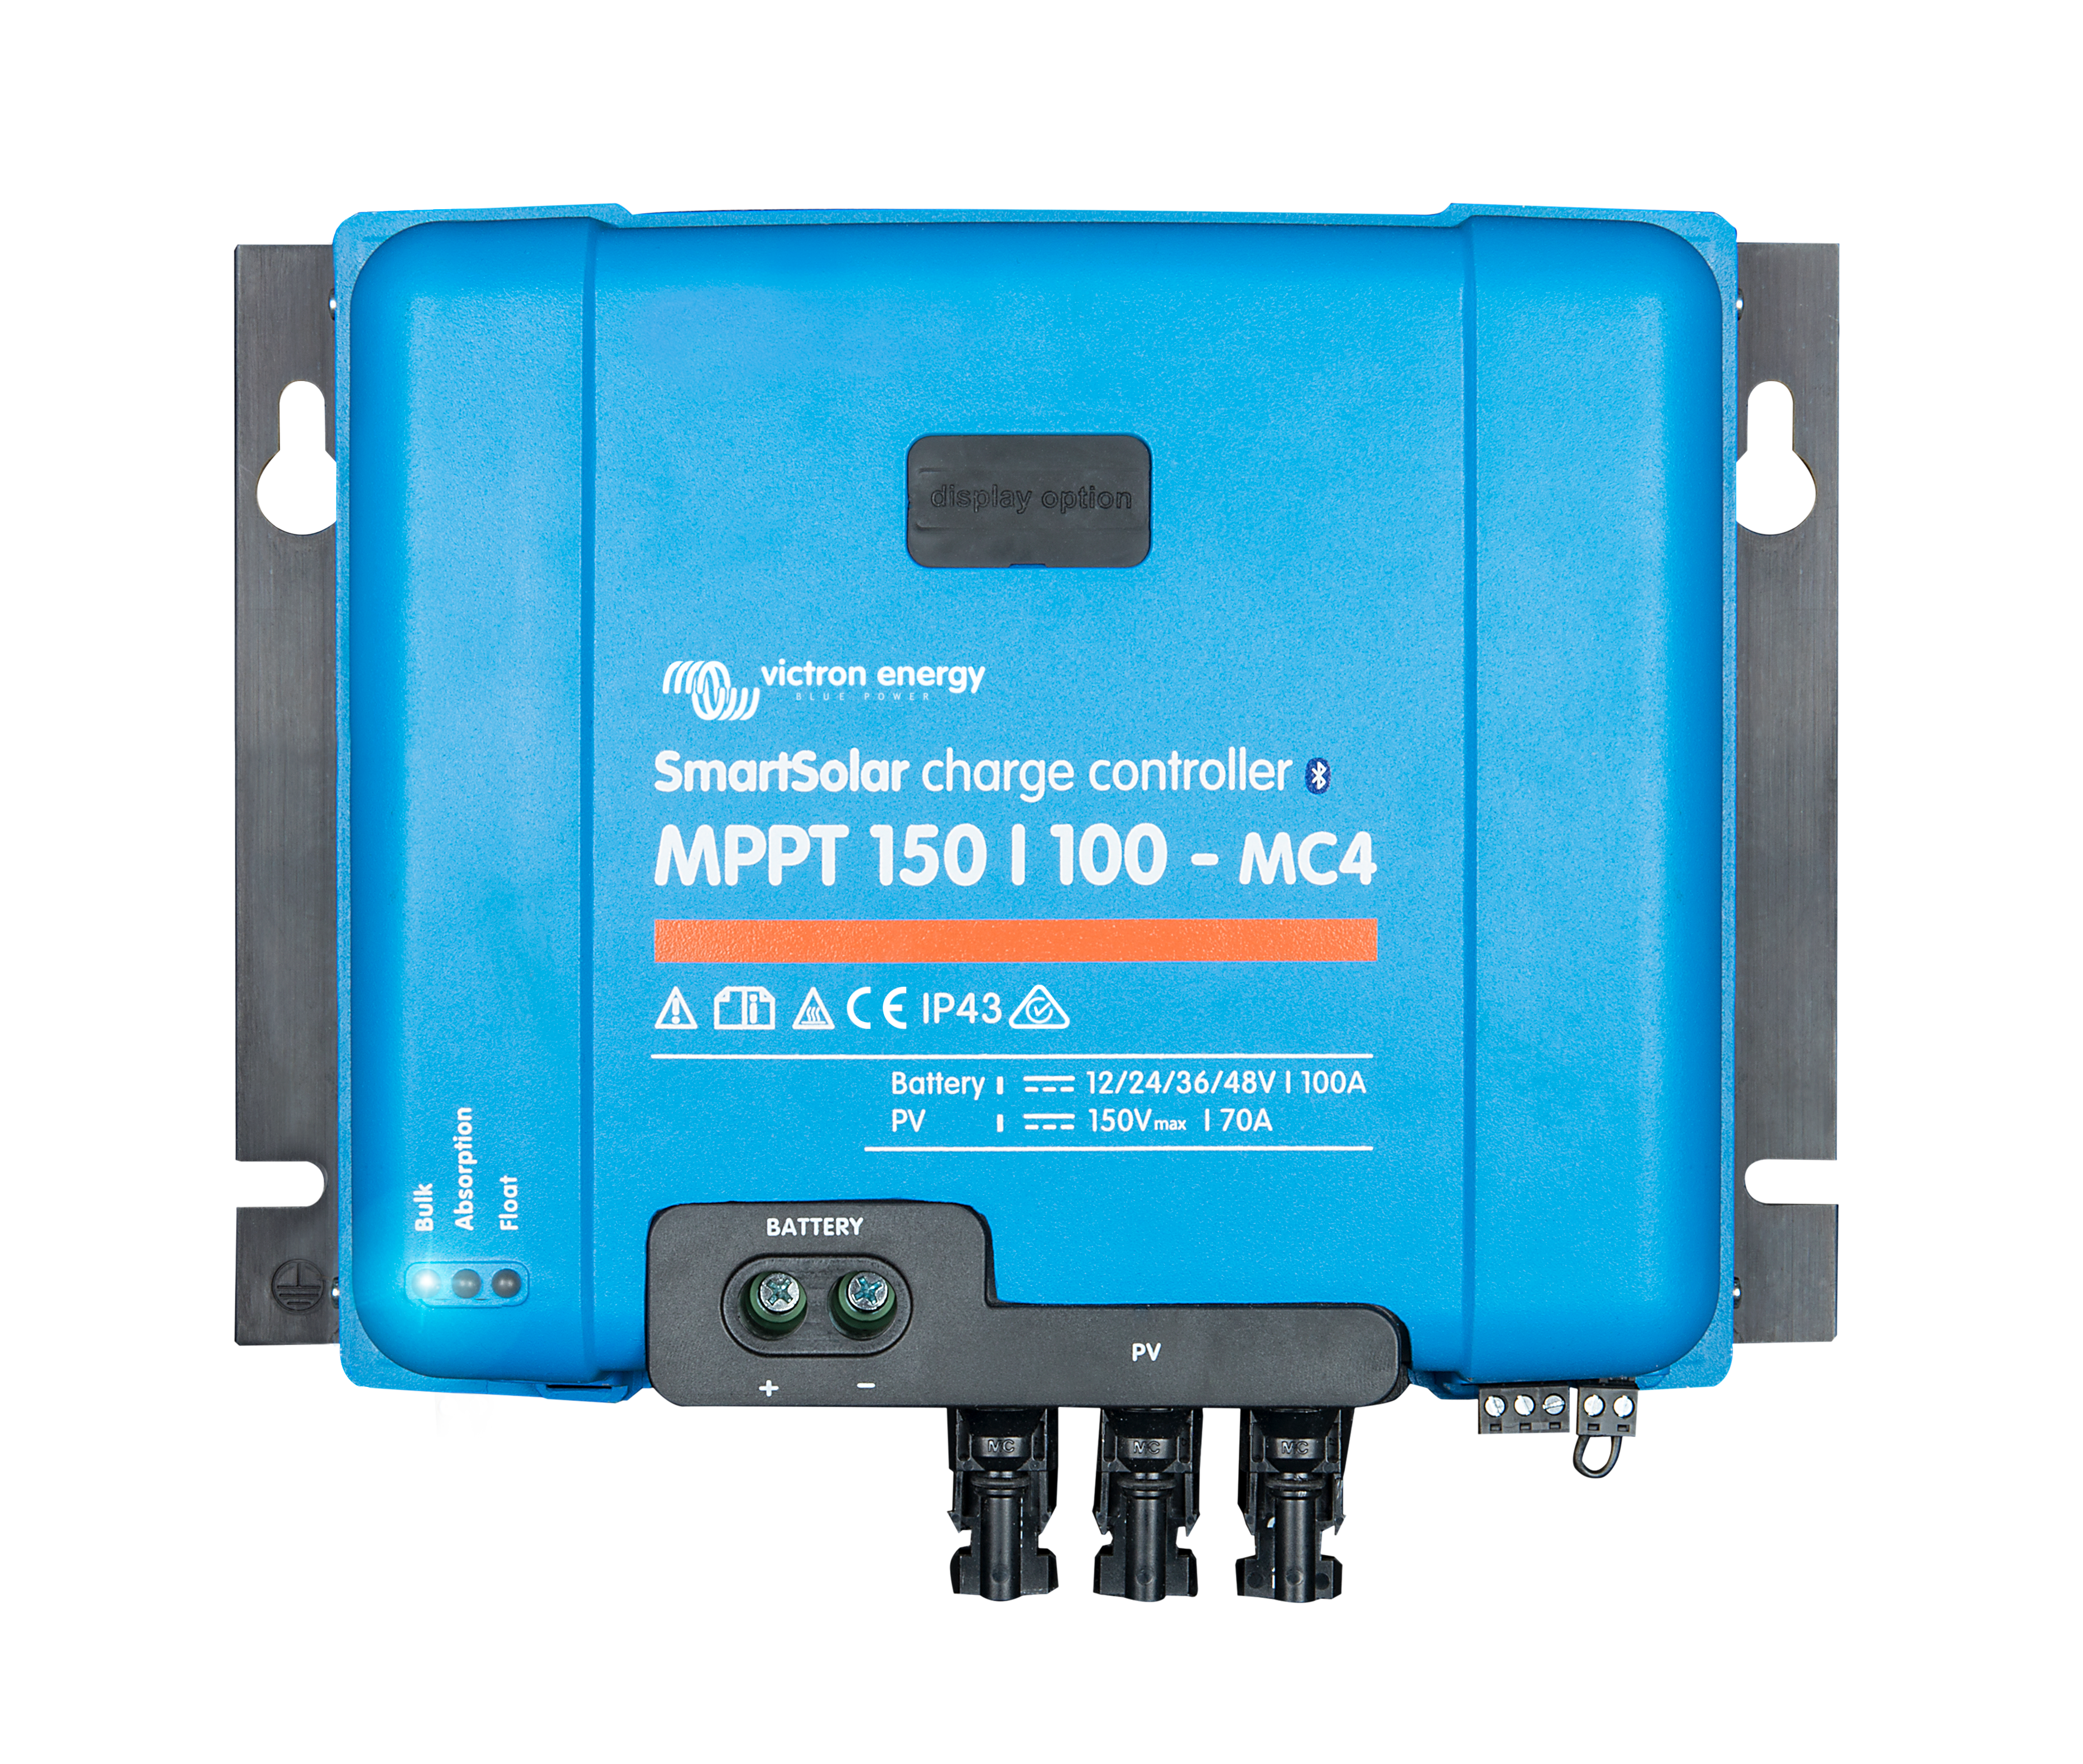 Https Daily 10 12vdc To 230vac 60w Inverter Circuit Smartsolar Charge Controller 150 100 Mc4 Top